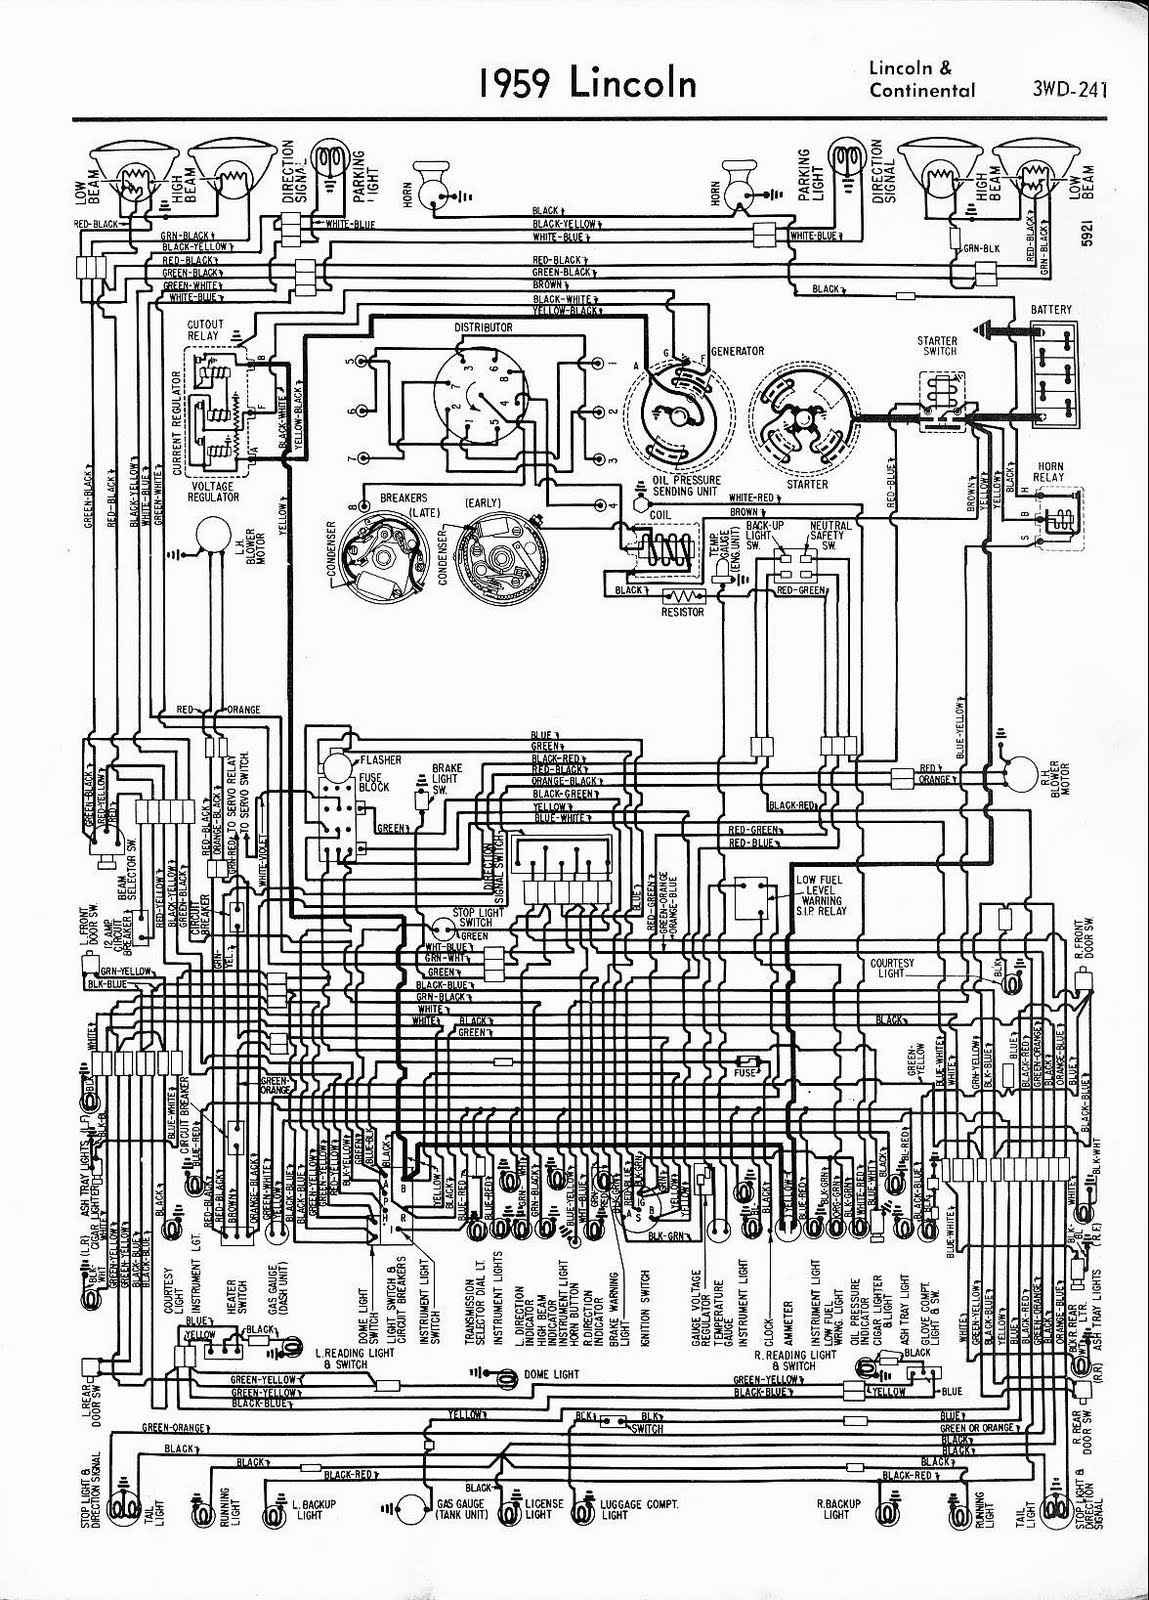 lincoln welders wiring diagrams 2001 toyota tacoma engine diagram free auto diagram: 1959 continental